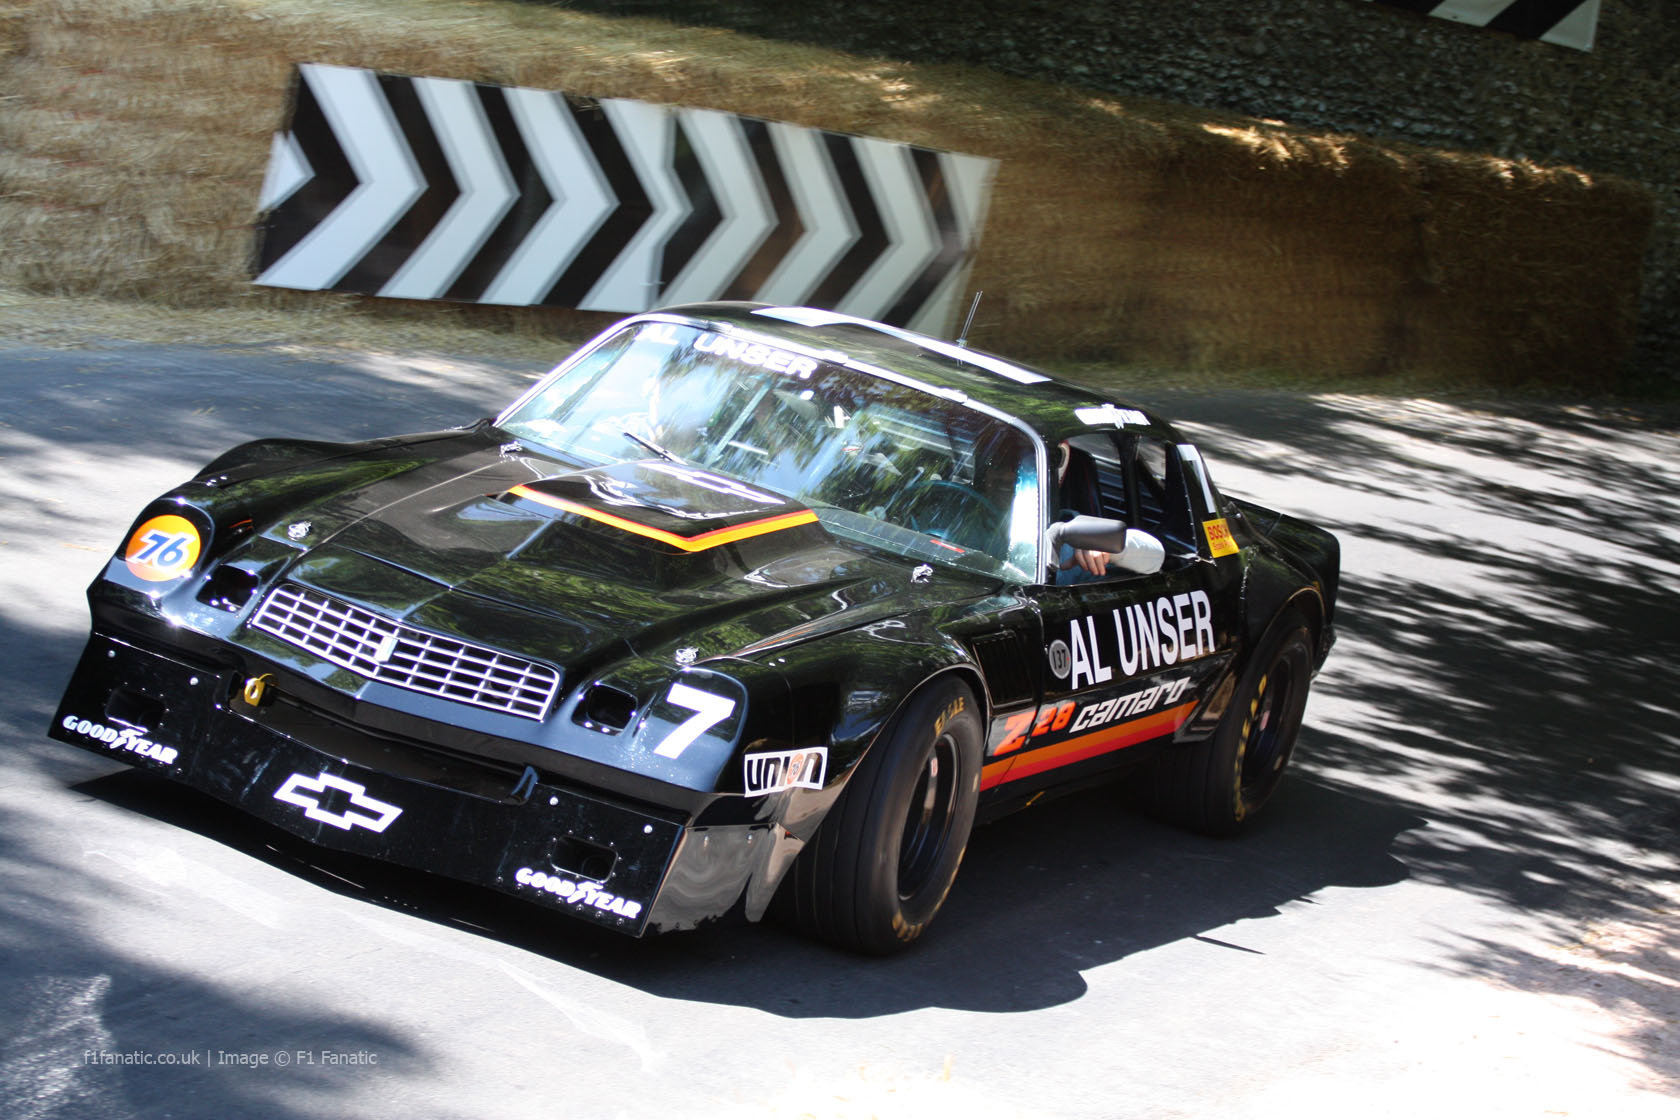 Chevrolet Camaro IROC, Goodwood Festival of Speed, 2014